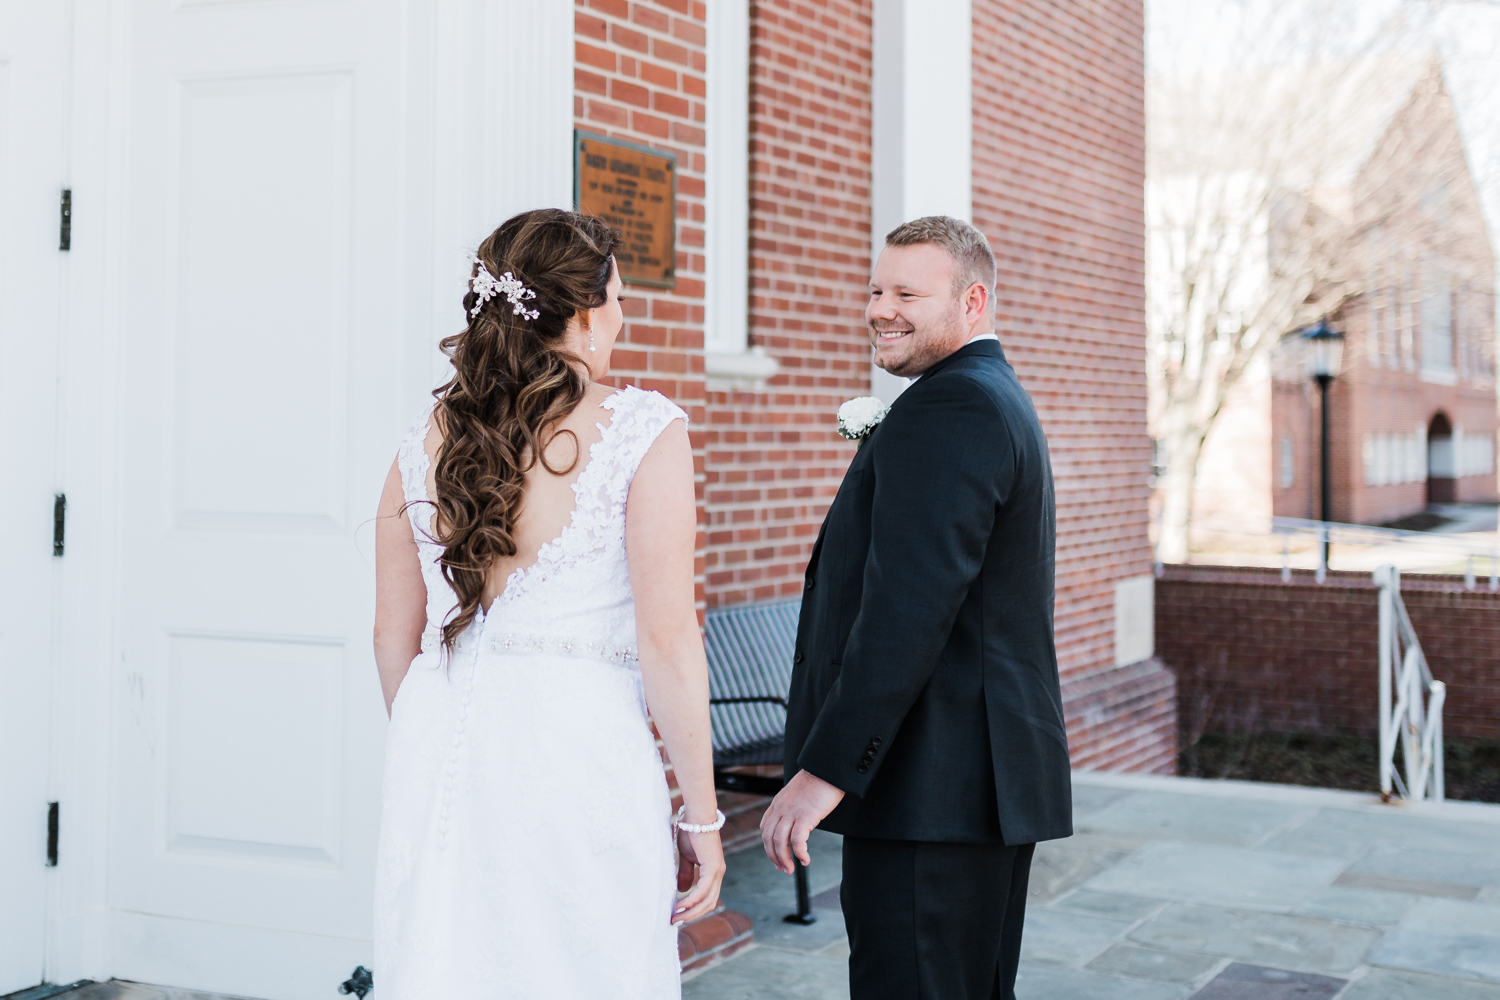 Groom sees his bride for the first time at McDaniel College